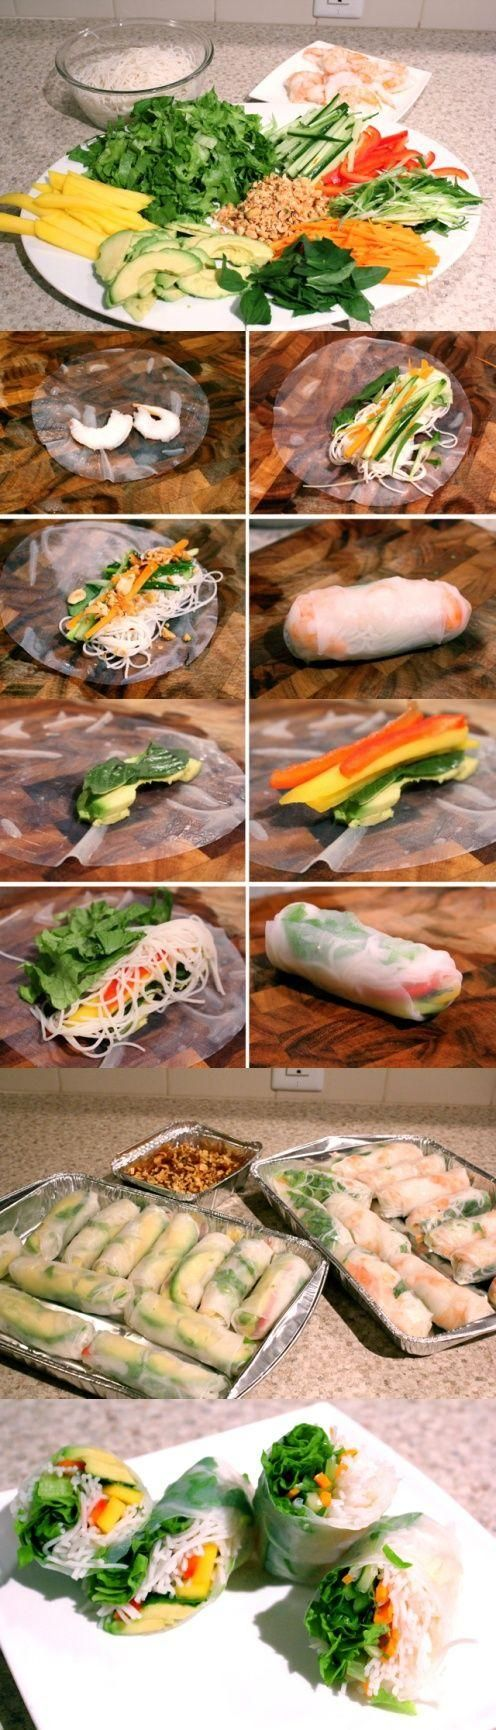 Shrimp Salad Rolls and Avocado Mango Salad Rolls - Joybx